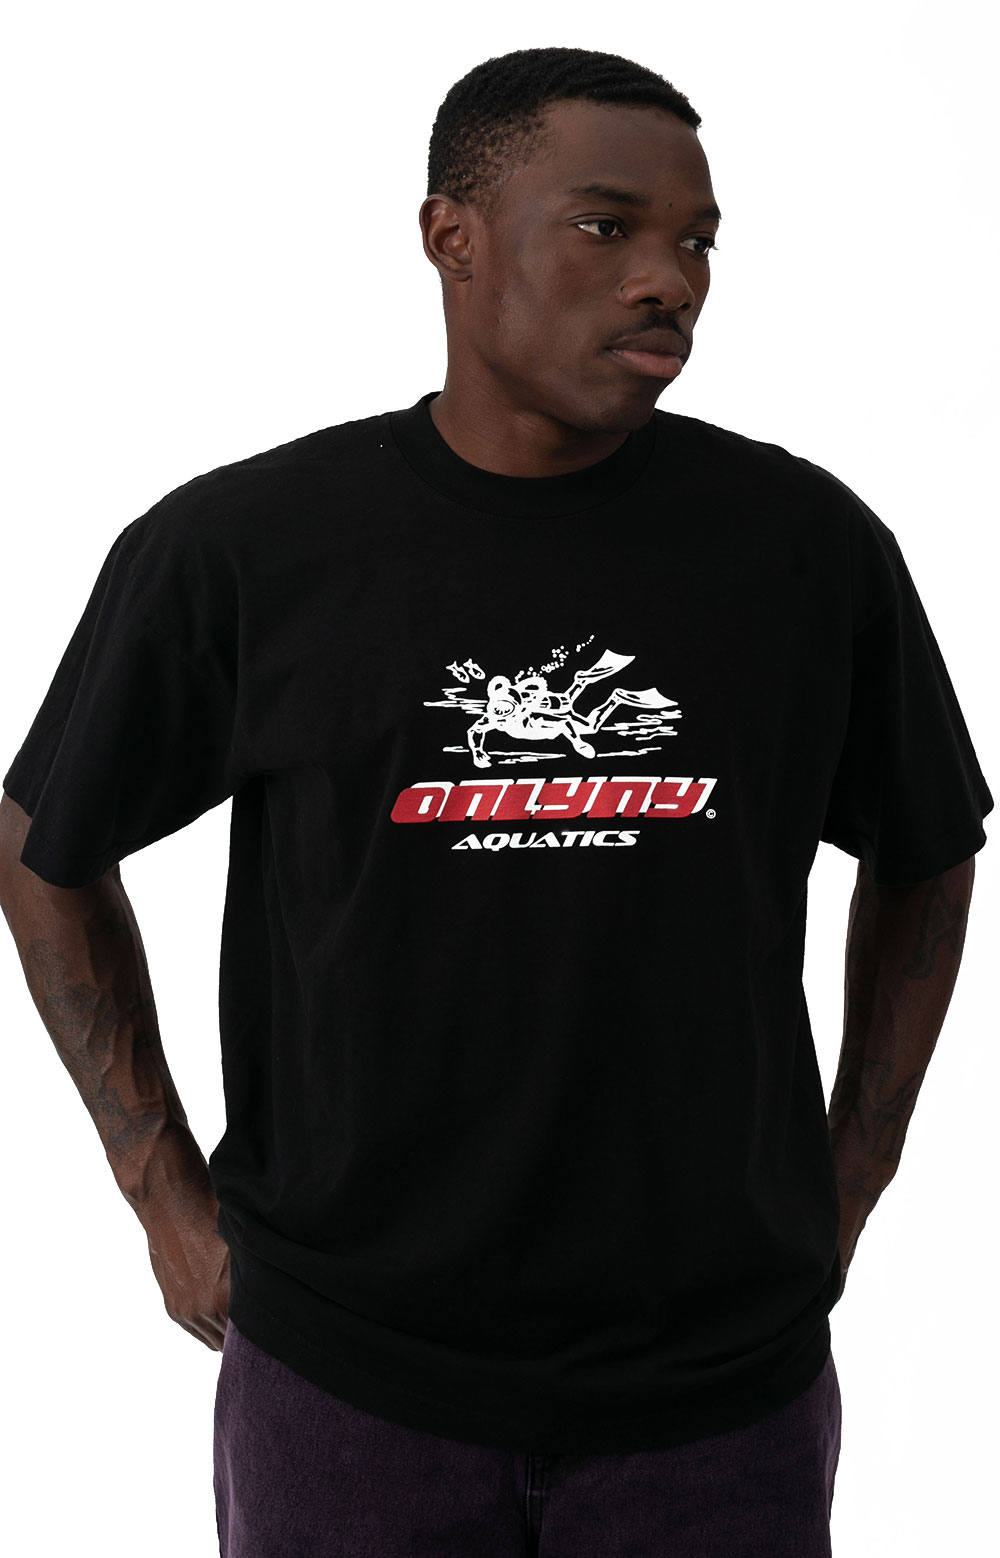 Aquatics T-Shirt - Black